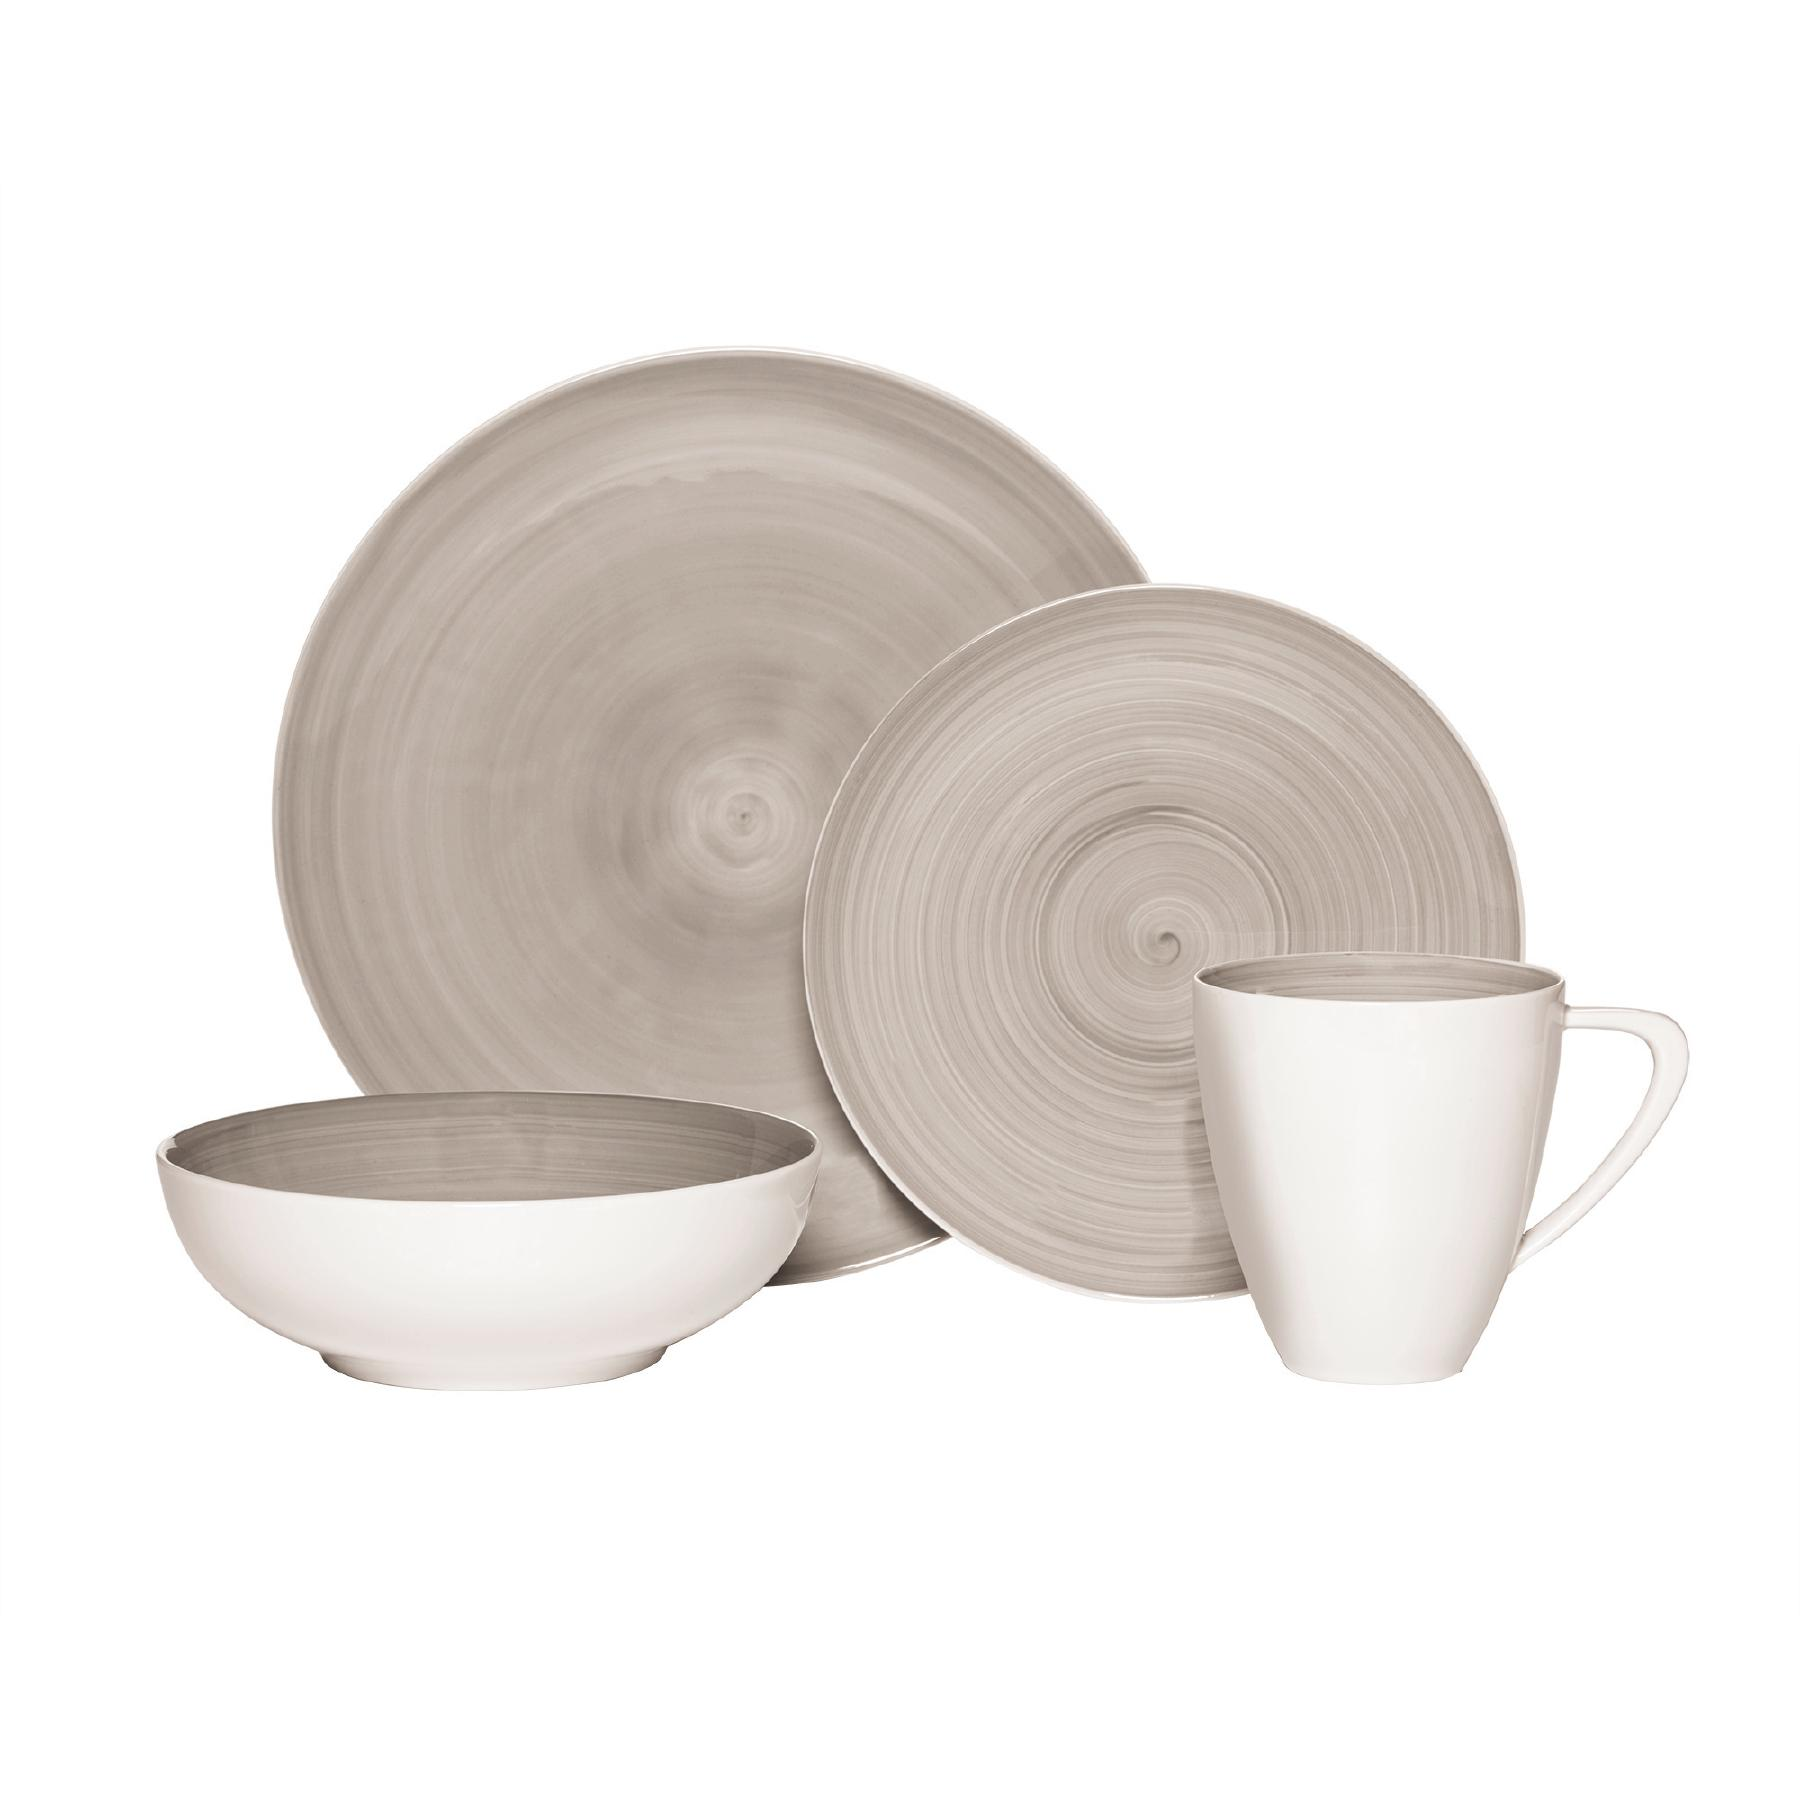 mikasa dinnerware plates settings dishes · View larger  sc 1 st  Amazon.com & Amazon.com | Mikasa 5154345 Clover 20-Piece Stainless Steel Flatware ...